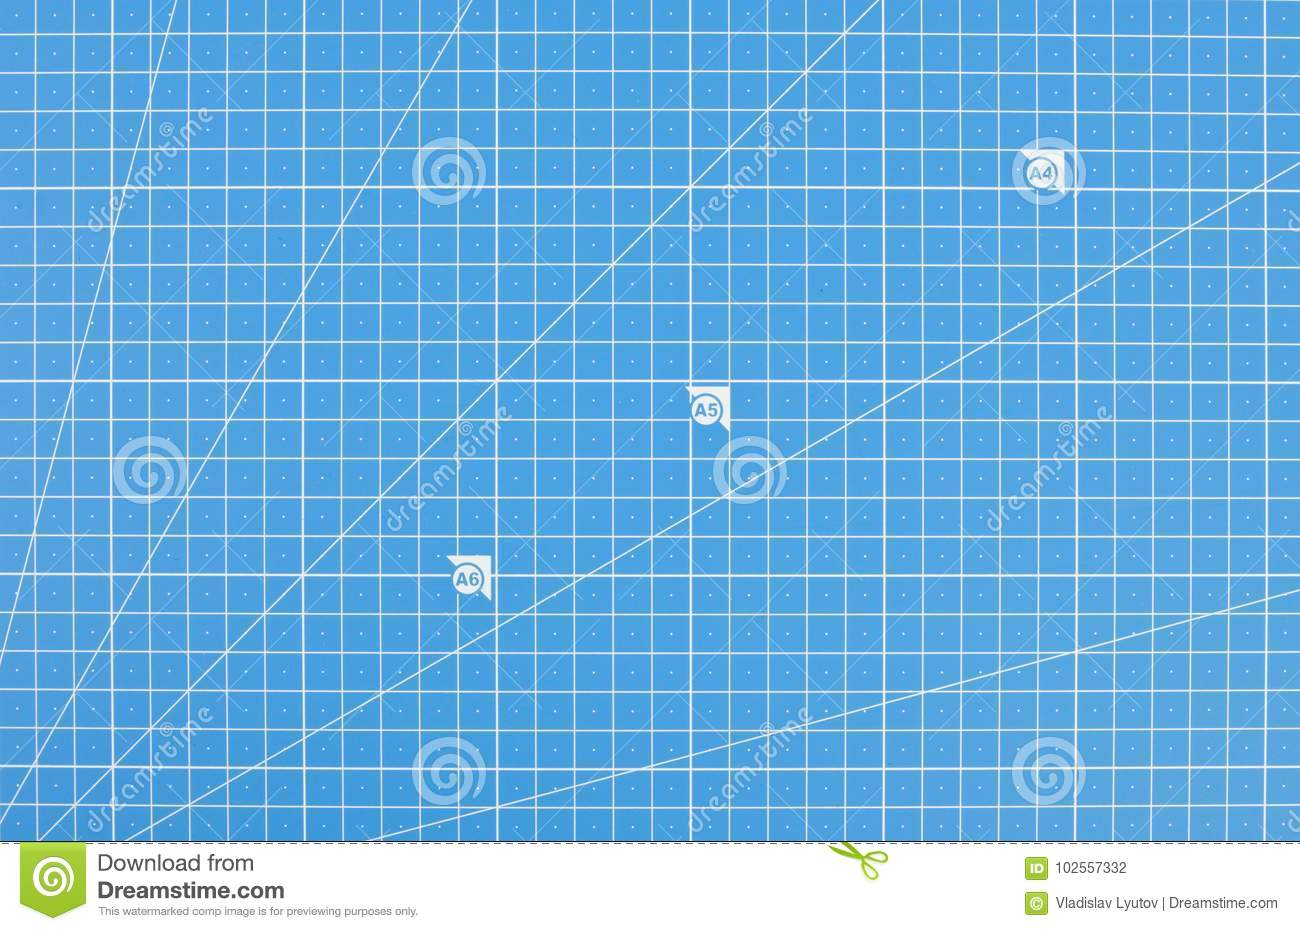 Scientific engineering grid paper blueprint background stock photo download scientific engineering grid paper blueprint background stock photo image of abstract blank malvernweather Gallery